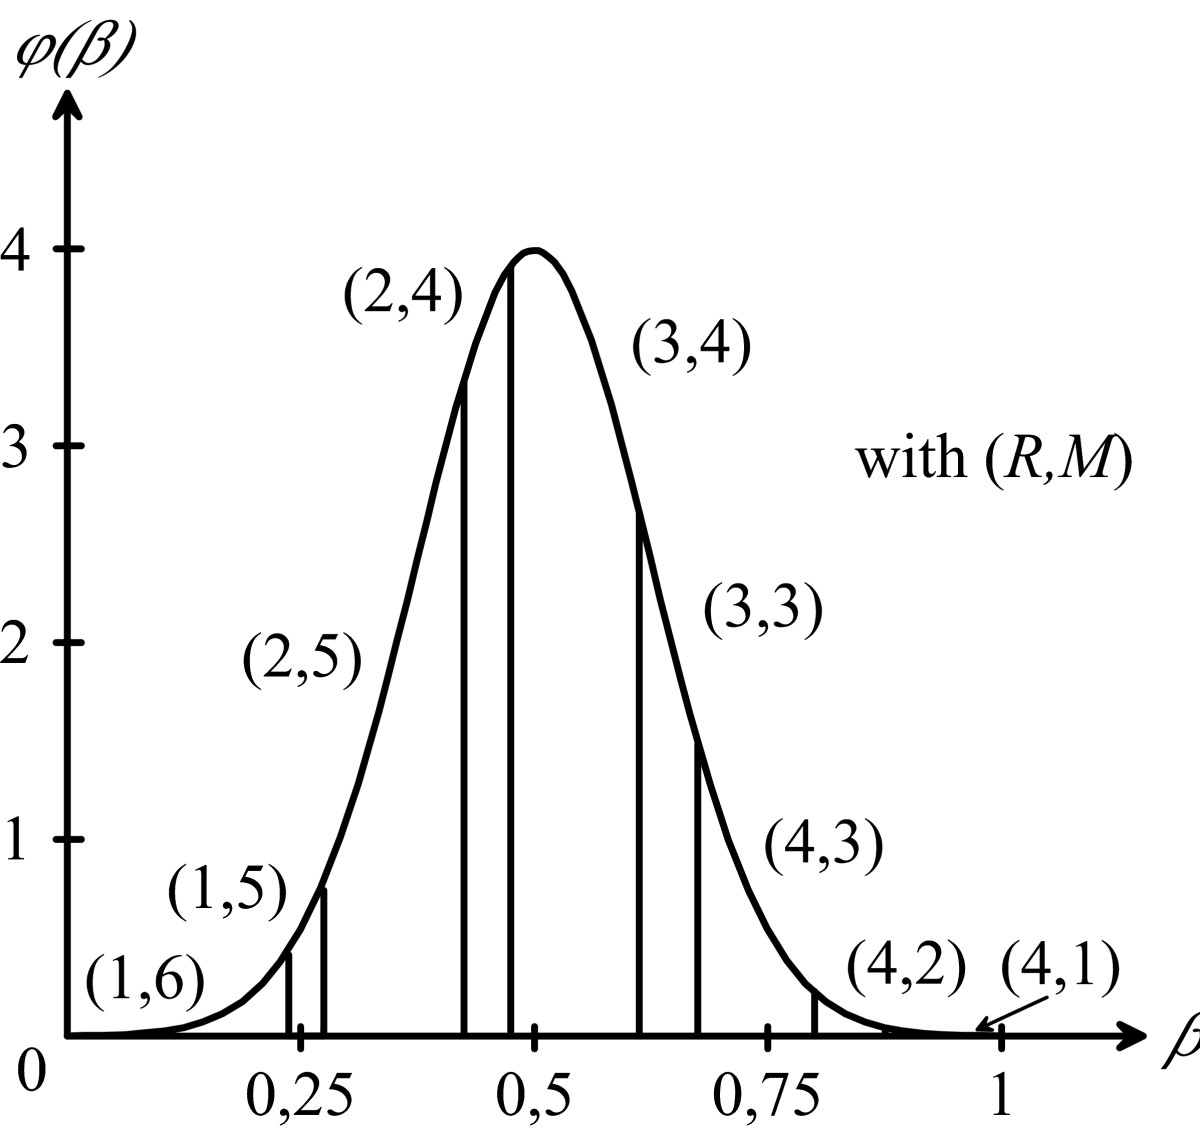 http://static-content.springer.com/image/art%3A10.1186%2F2210-4690-1-3/MediaObjects/13243_2011_Article_3_Fig5_HTML.jpg